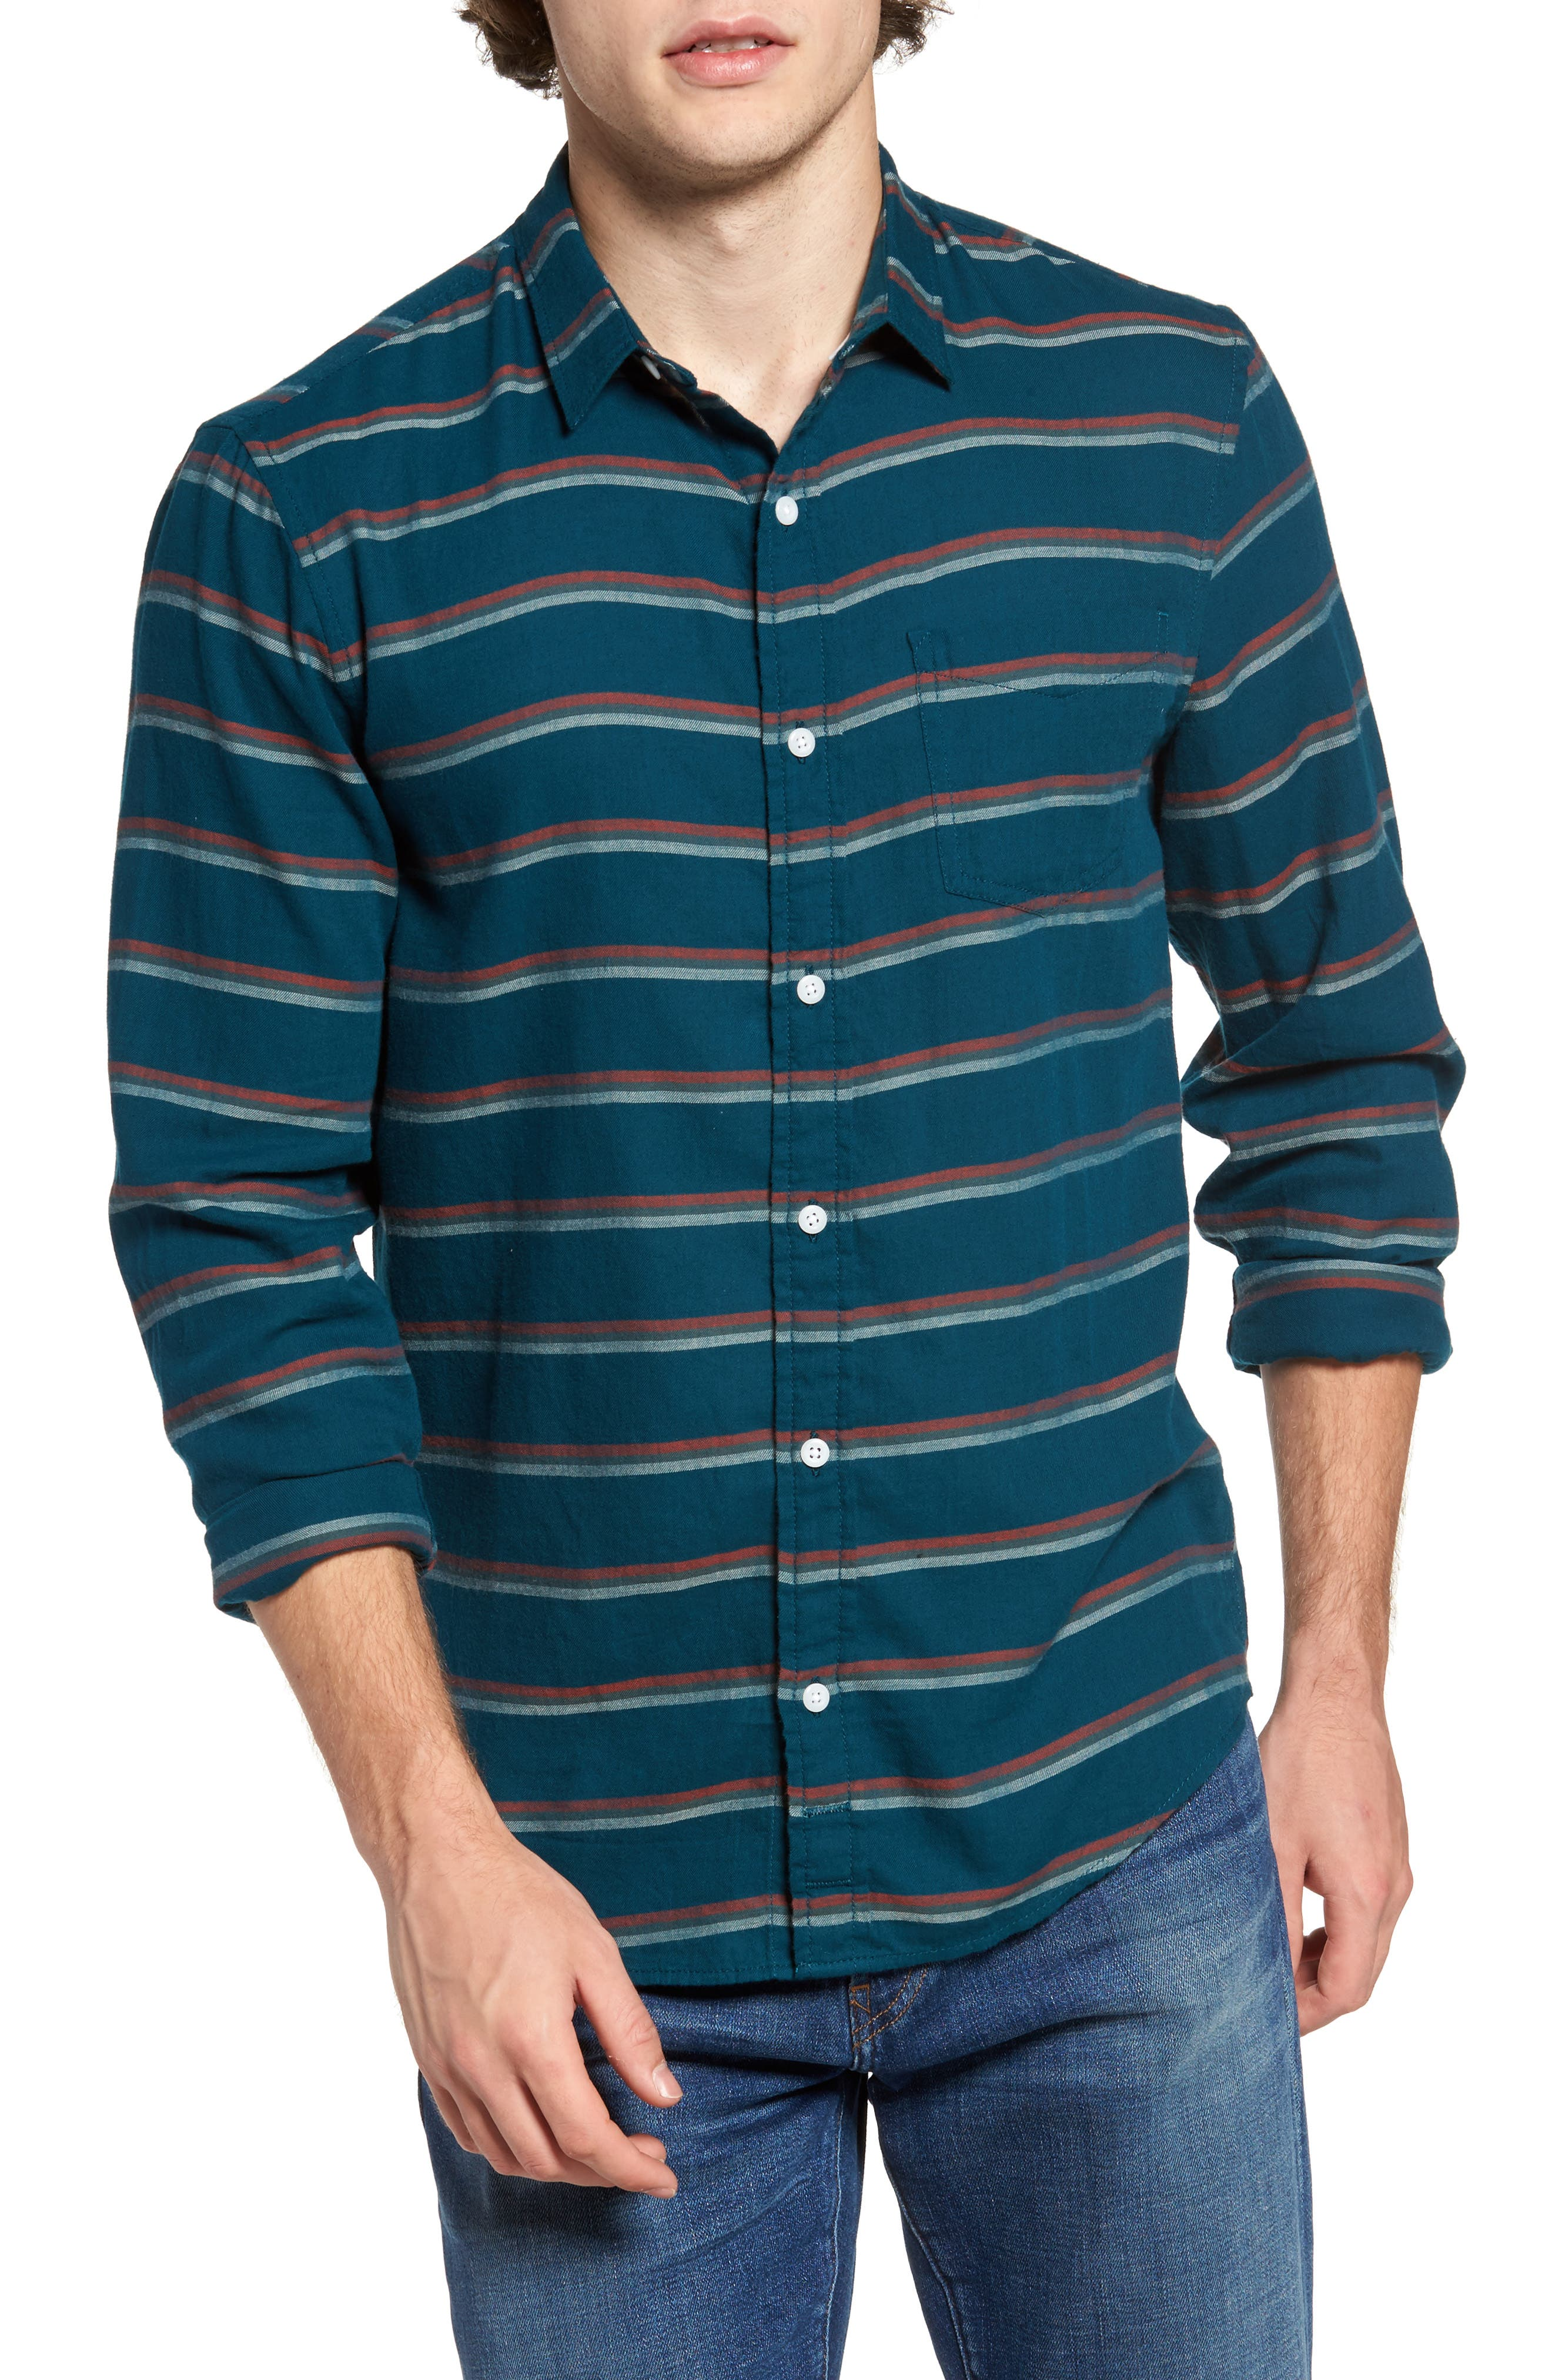 Main Image - 1901 Stripe Twill Shirt